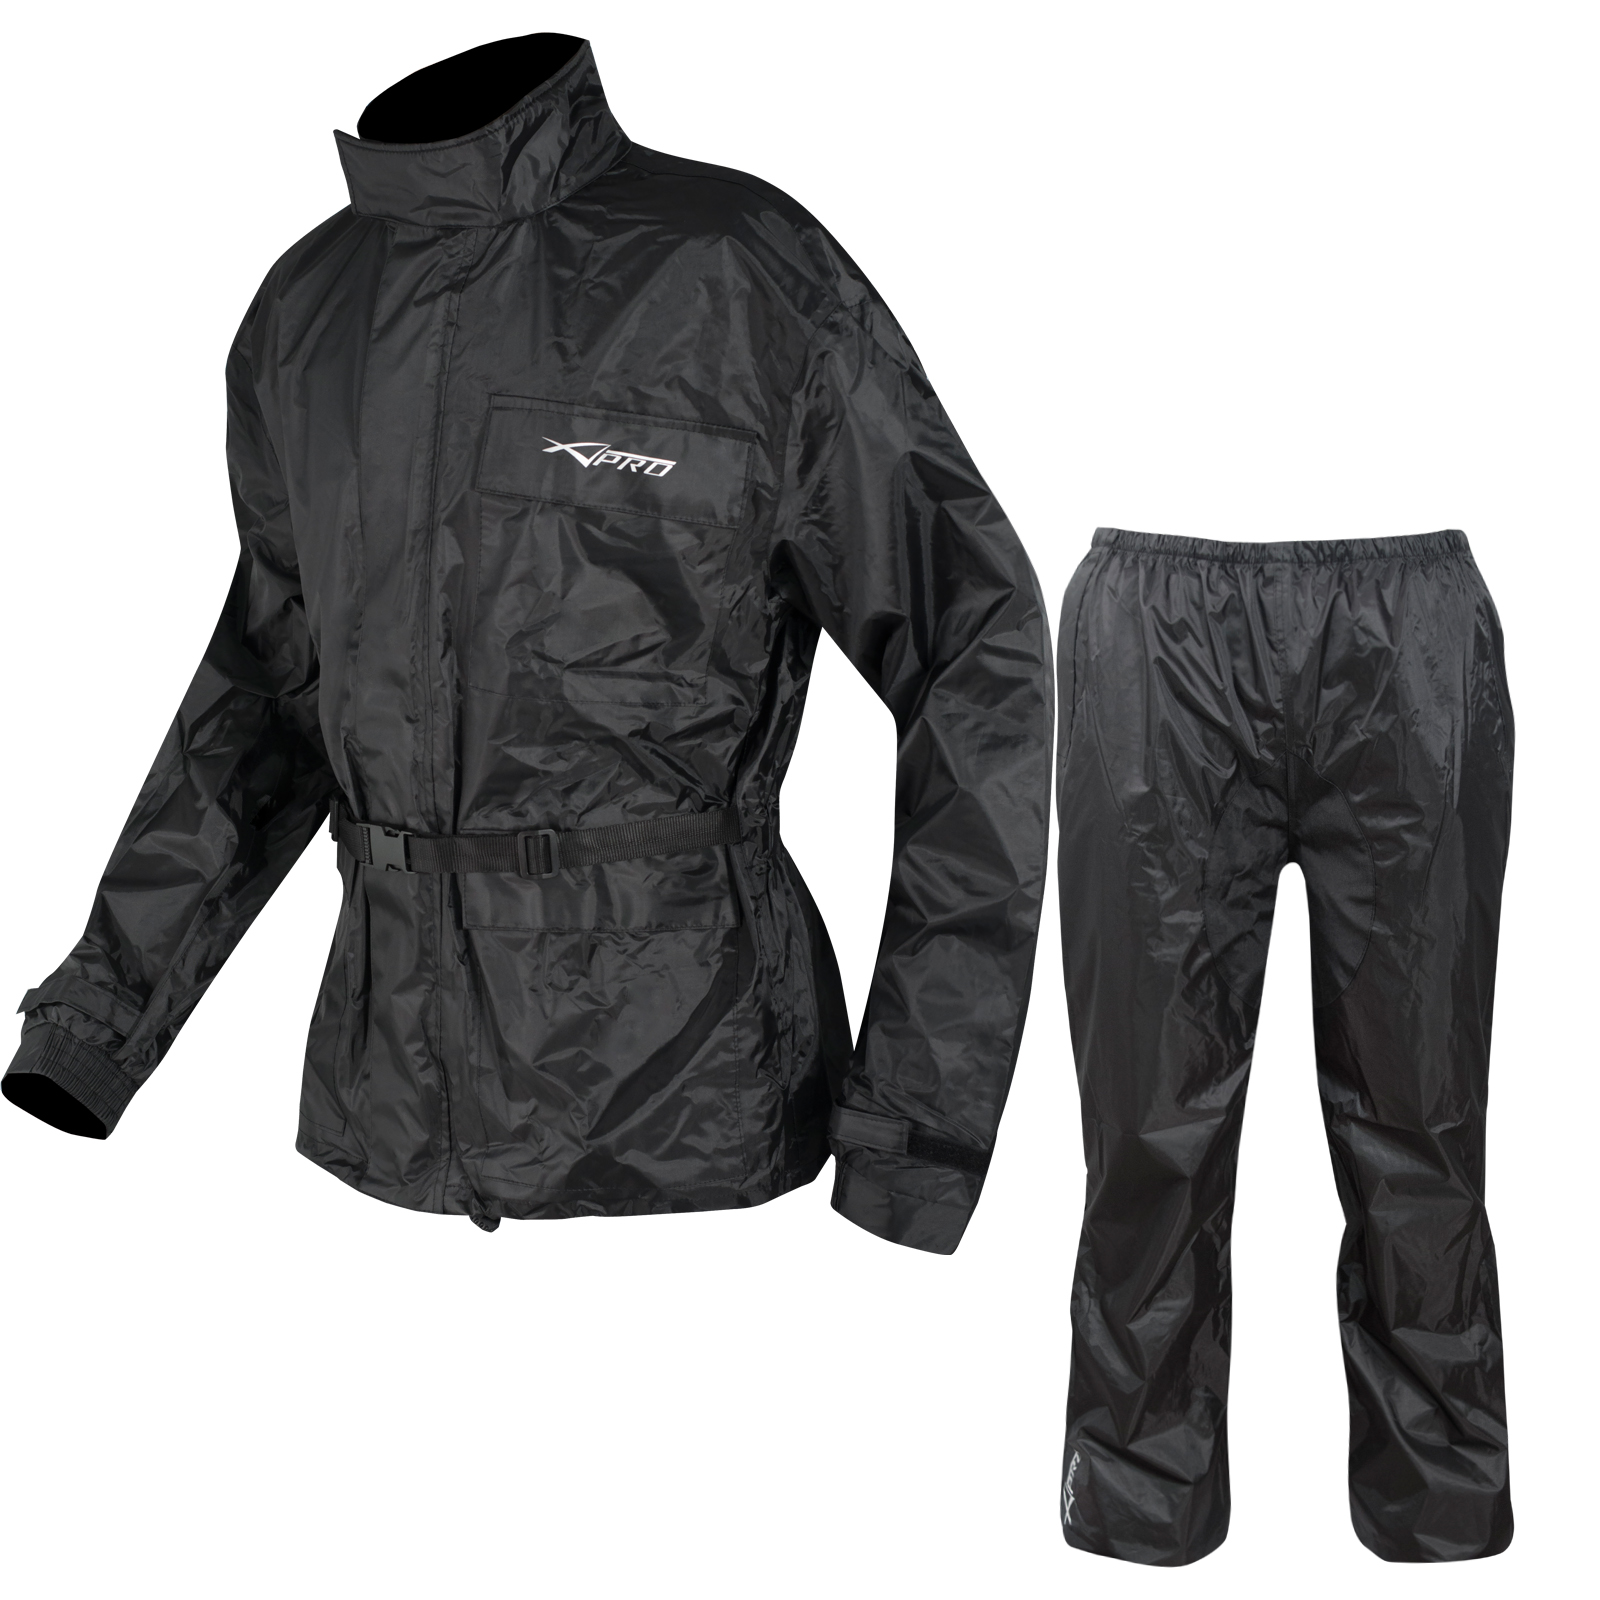 combinaison textile impermeable anti pluie blouson pantalon moto motard touring ebay. Black Bedroom Furniture Sets. Home Design Ideas